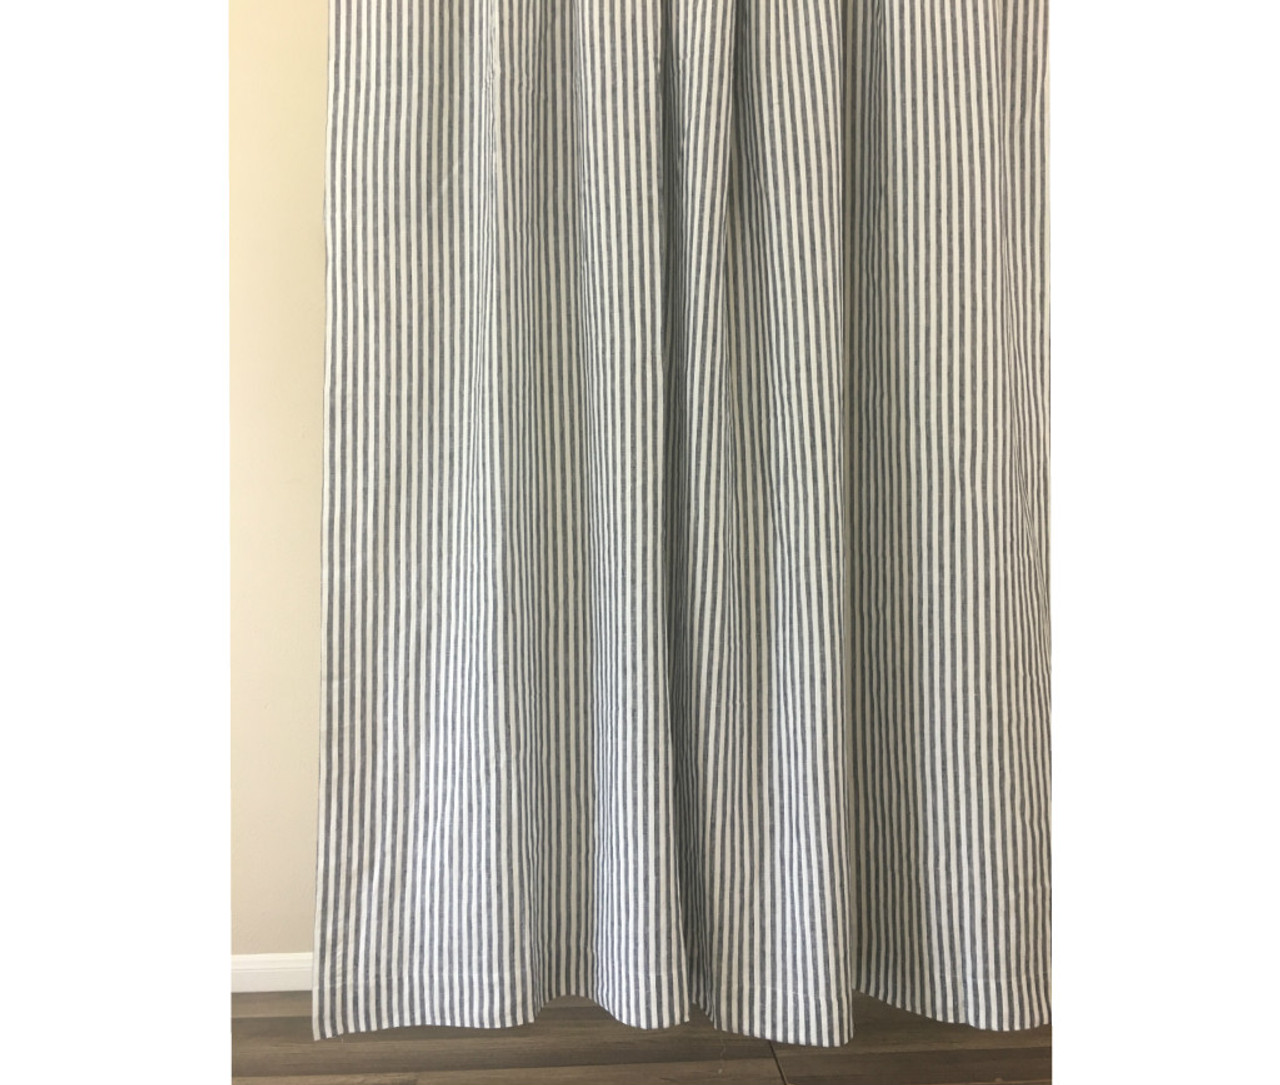 Linen Stripe Shower Curtain Slate Gray And White Striped Linen Shower Curtain